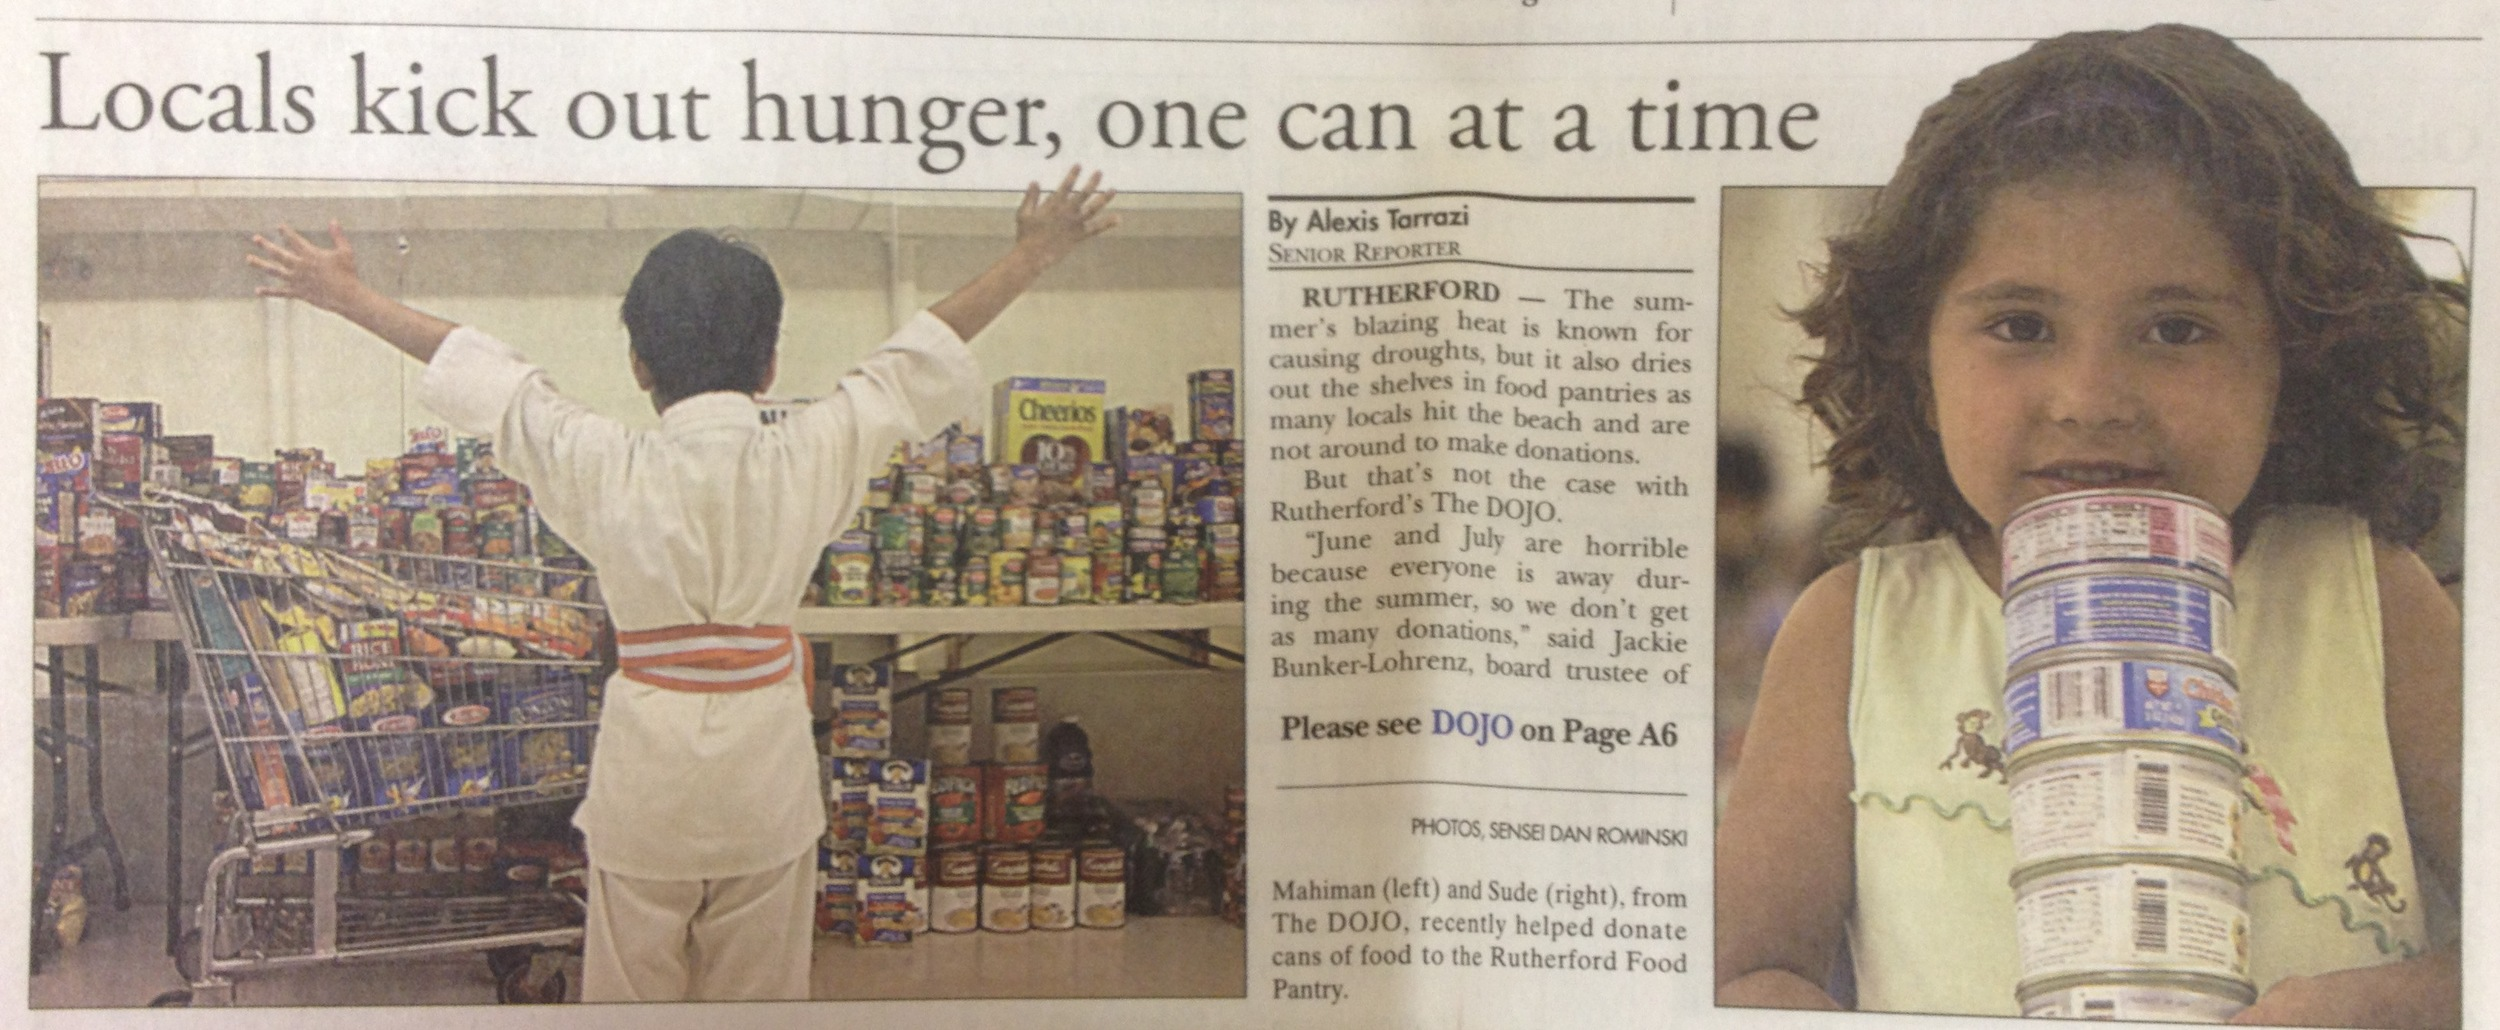 TheDOJO Food Drive has over the past 9 years raised about 20,000 food items, personal hygiene products & school supplies for The Rutherford Food Pantry.